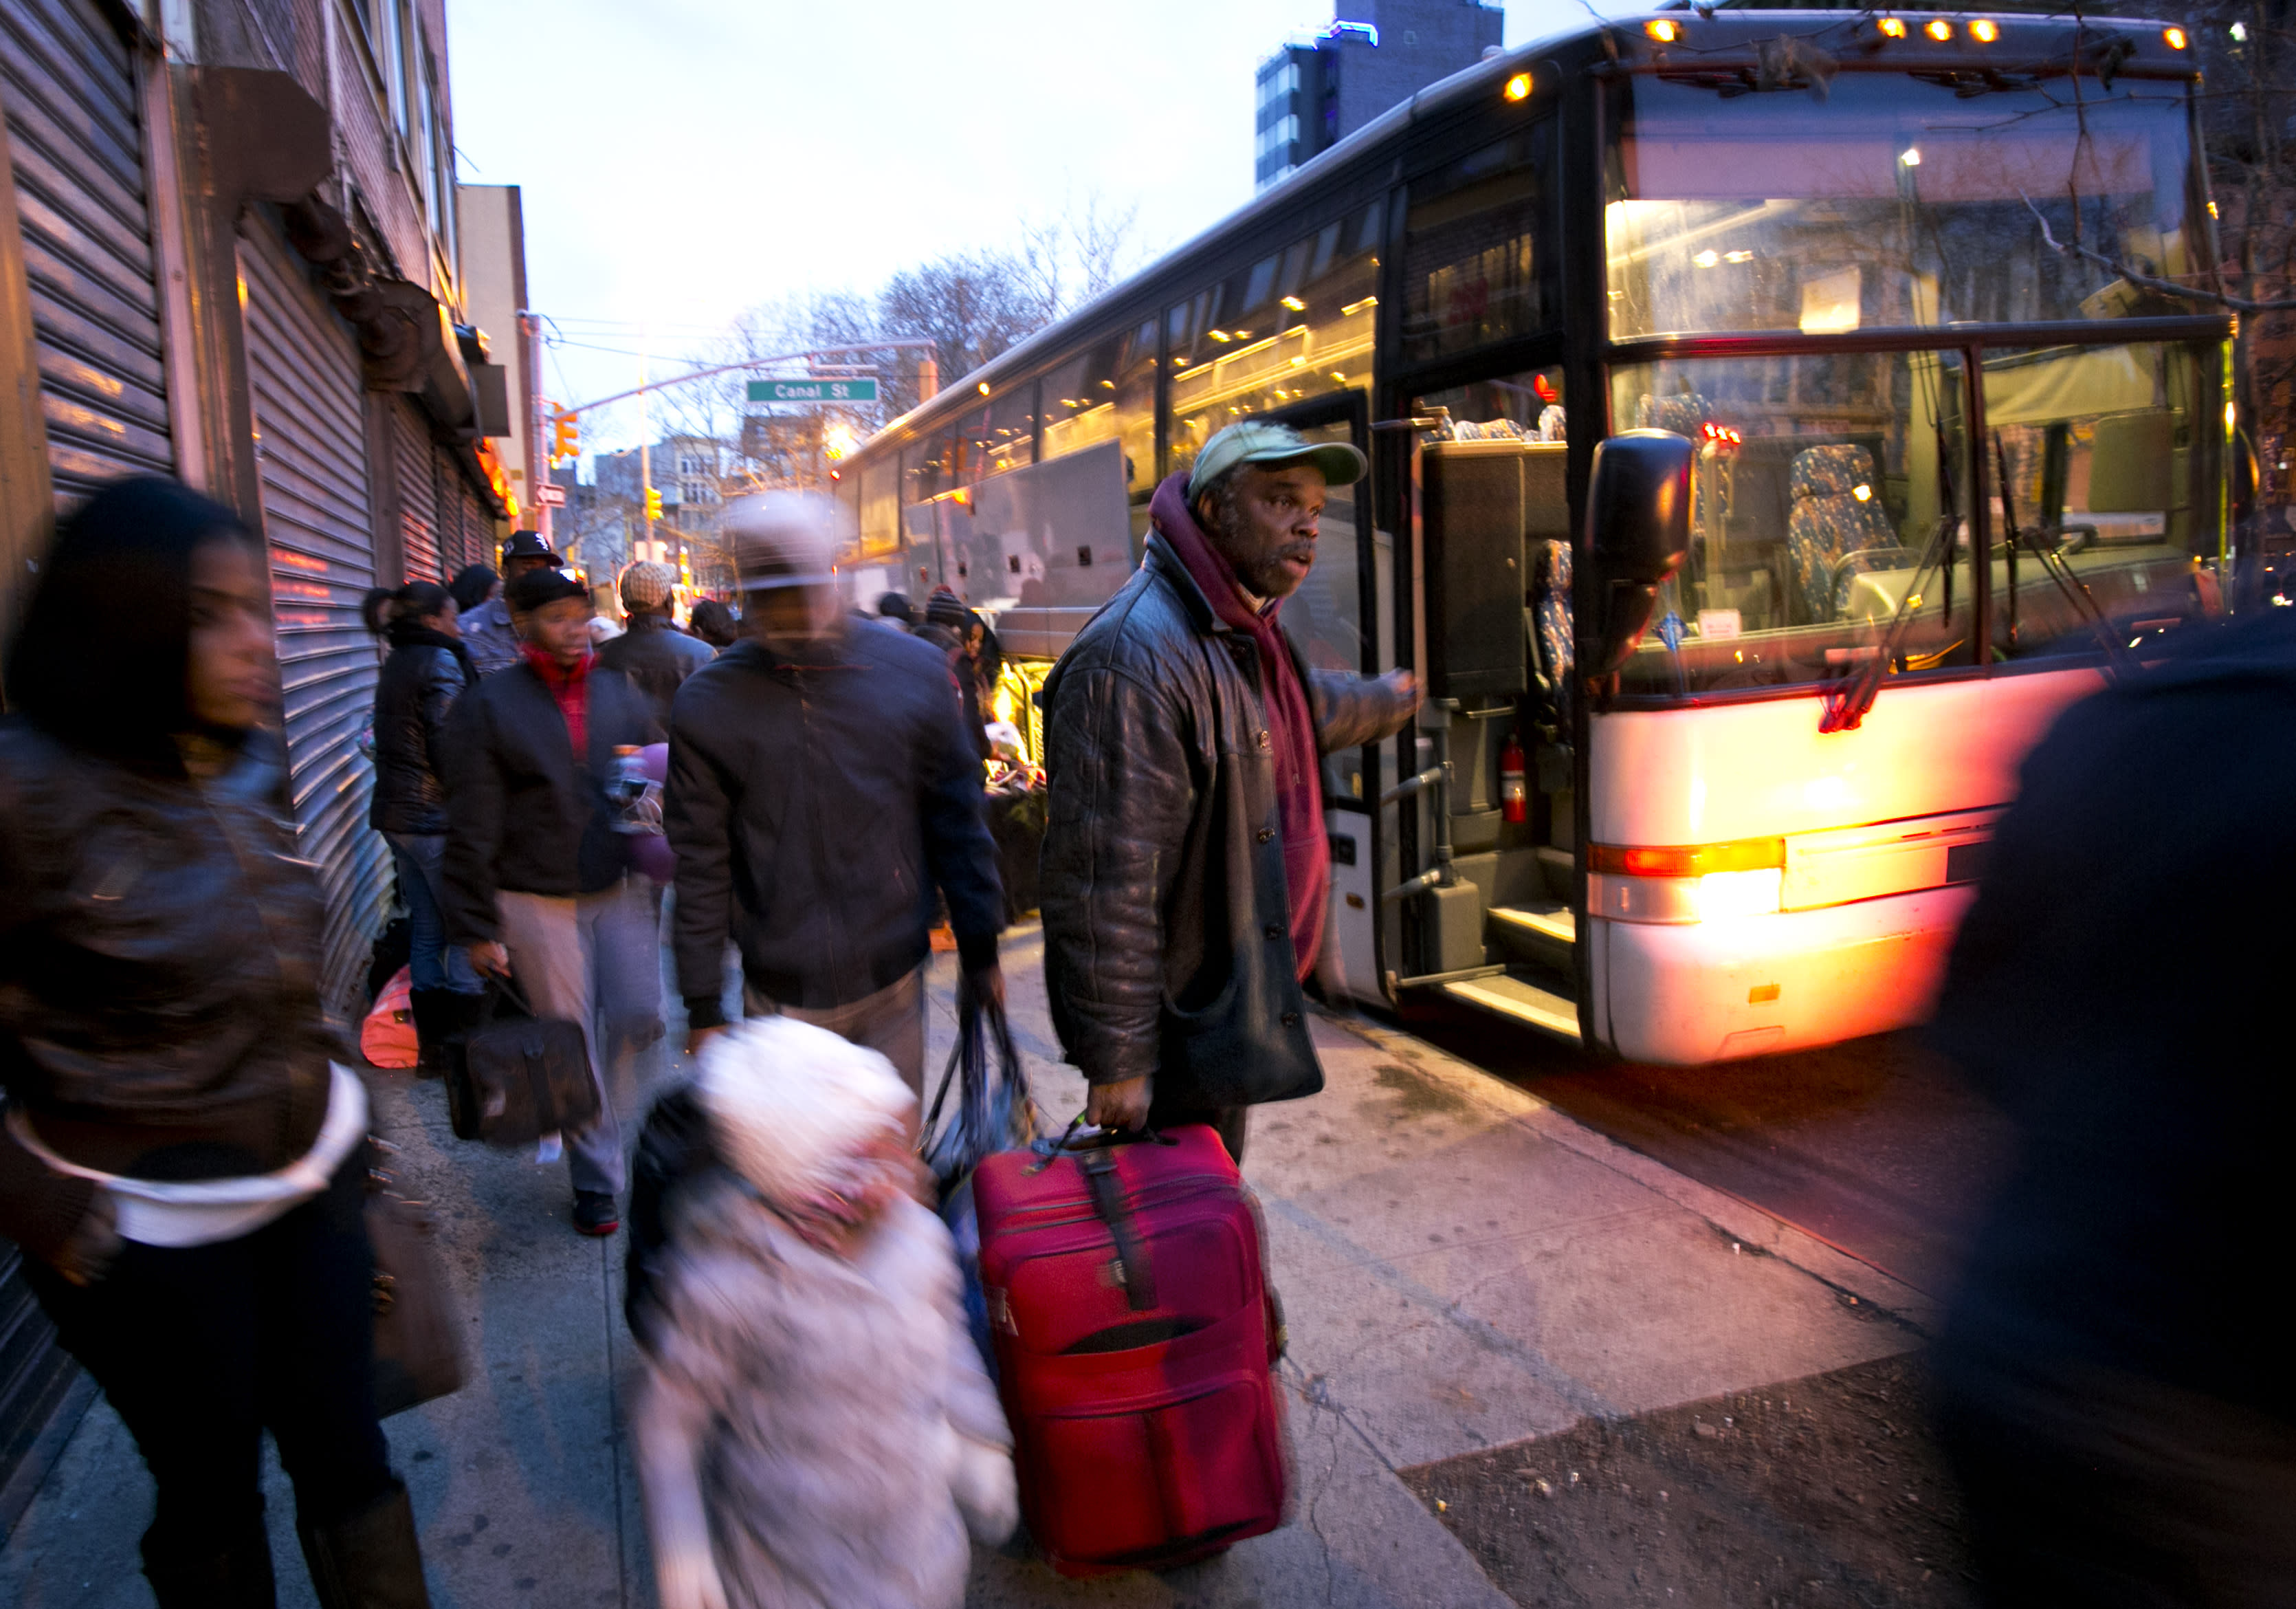 Travelers who arrived on a bus from Virginia pull their suitcases along a sidewalk in the Chinatown section of New York, Tuesday, Nov. 26, 2013. Millions of Americans are hurtling along the nation's jumble of transportation arteries for Thanksgiving, and more of them are discovering that a bus is the cheapest, comfiest and coolest way to stay zen while completing the nation's largest annual human migration. (AP Photo/Mark Lennihan)